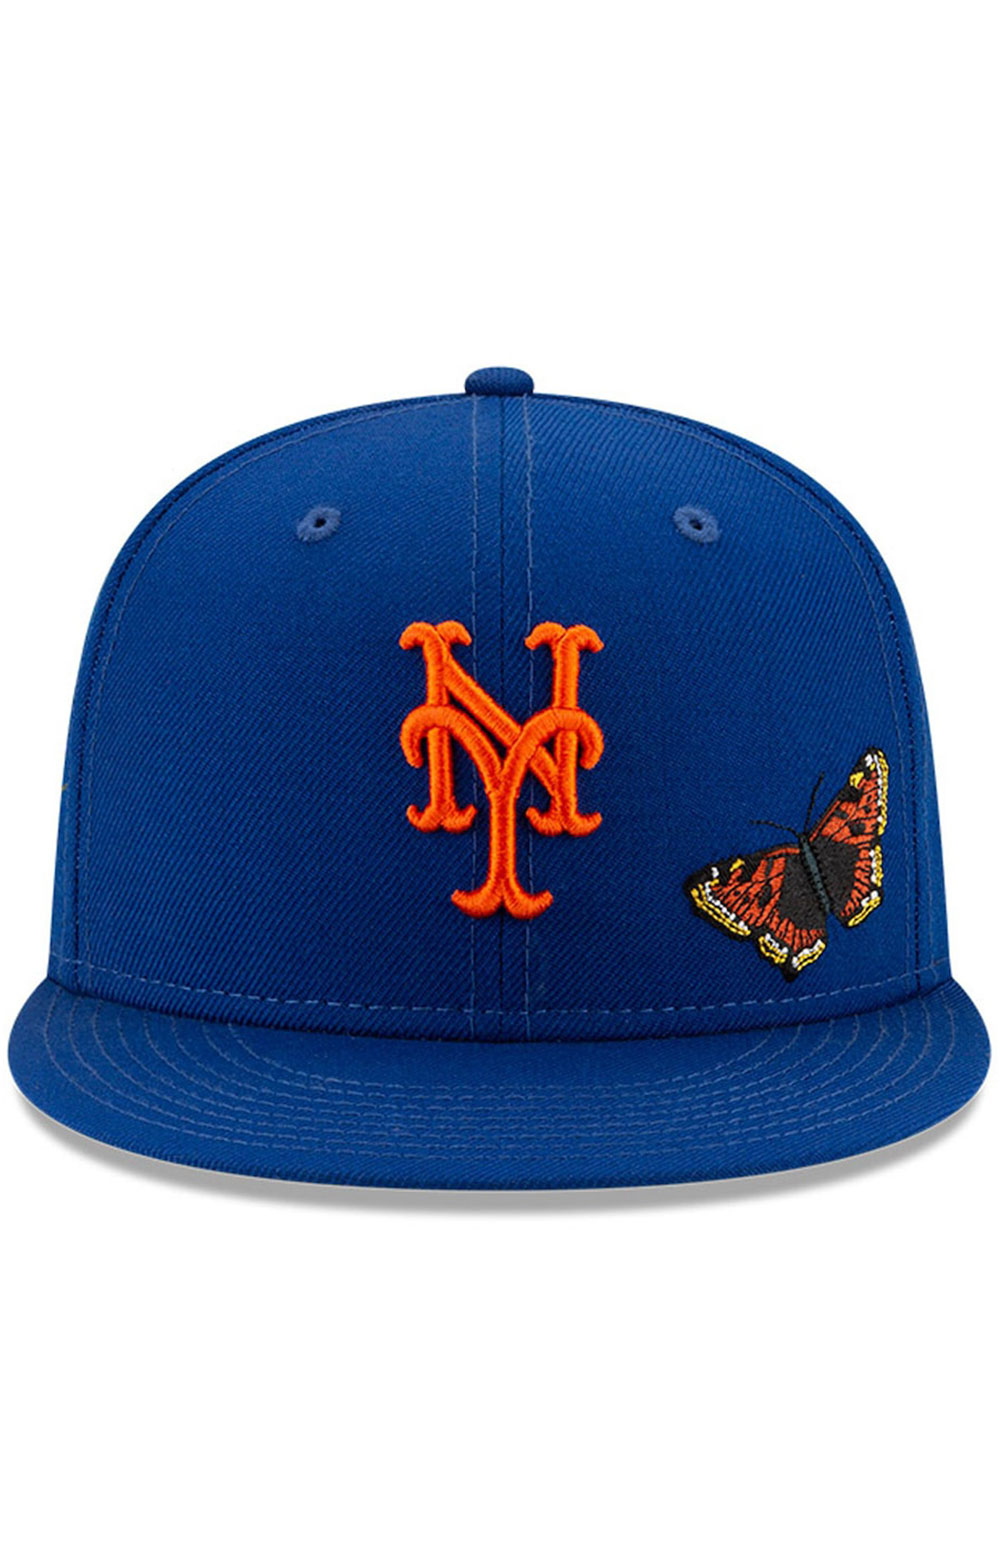 New York Mets 59Fifty Fitted Hat  2